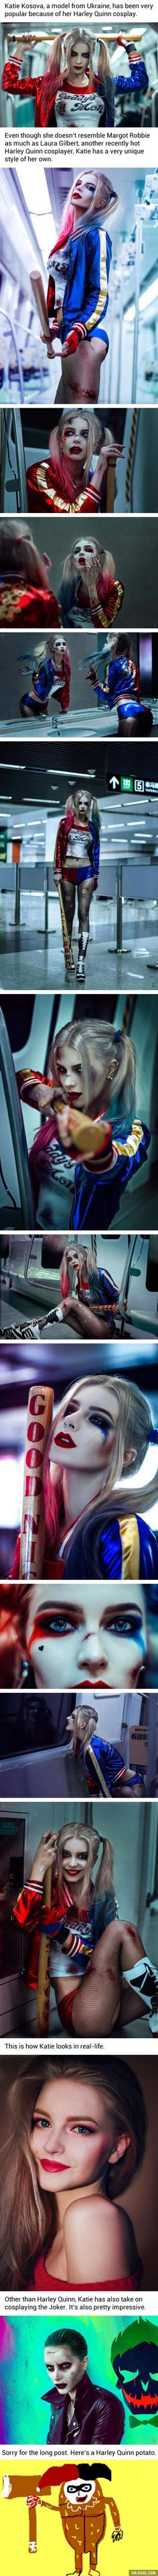 A very well executed Suicide Squad Harley Quinn Cosplay. All though I don't like the Suicide Squad design for her, I gotta give credit where credit is due. She did amazing and her Jared Leto Joker is better than the actual one! Harley Quinn Cosplay, Joker And Harley Quinn, Cosplay Anime, Cosplay Girls, Amazing Cosplay, Best Cosplay, Marvel Dc, Gotham, Pinturas Disney